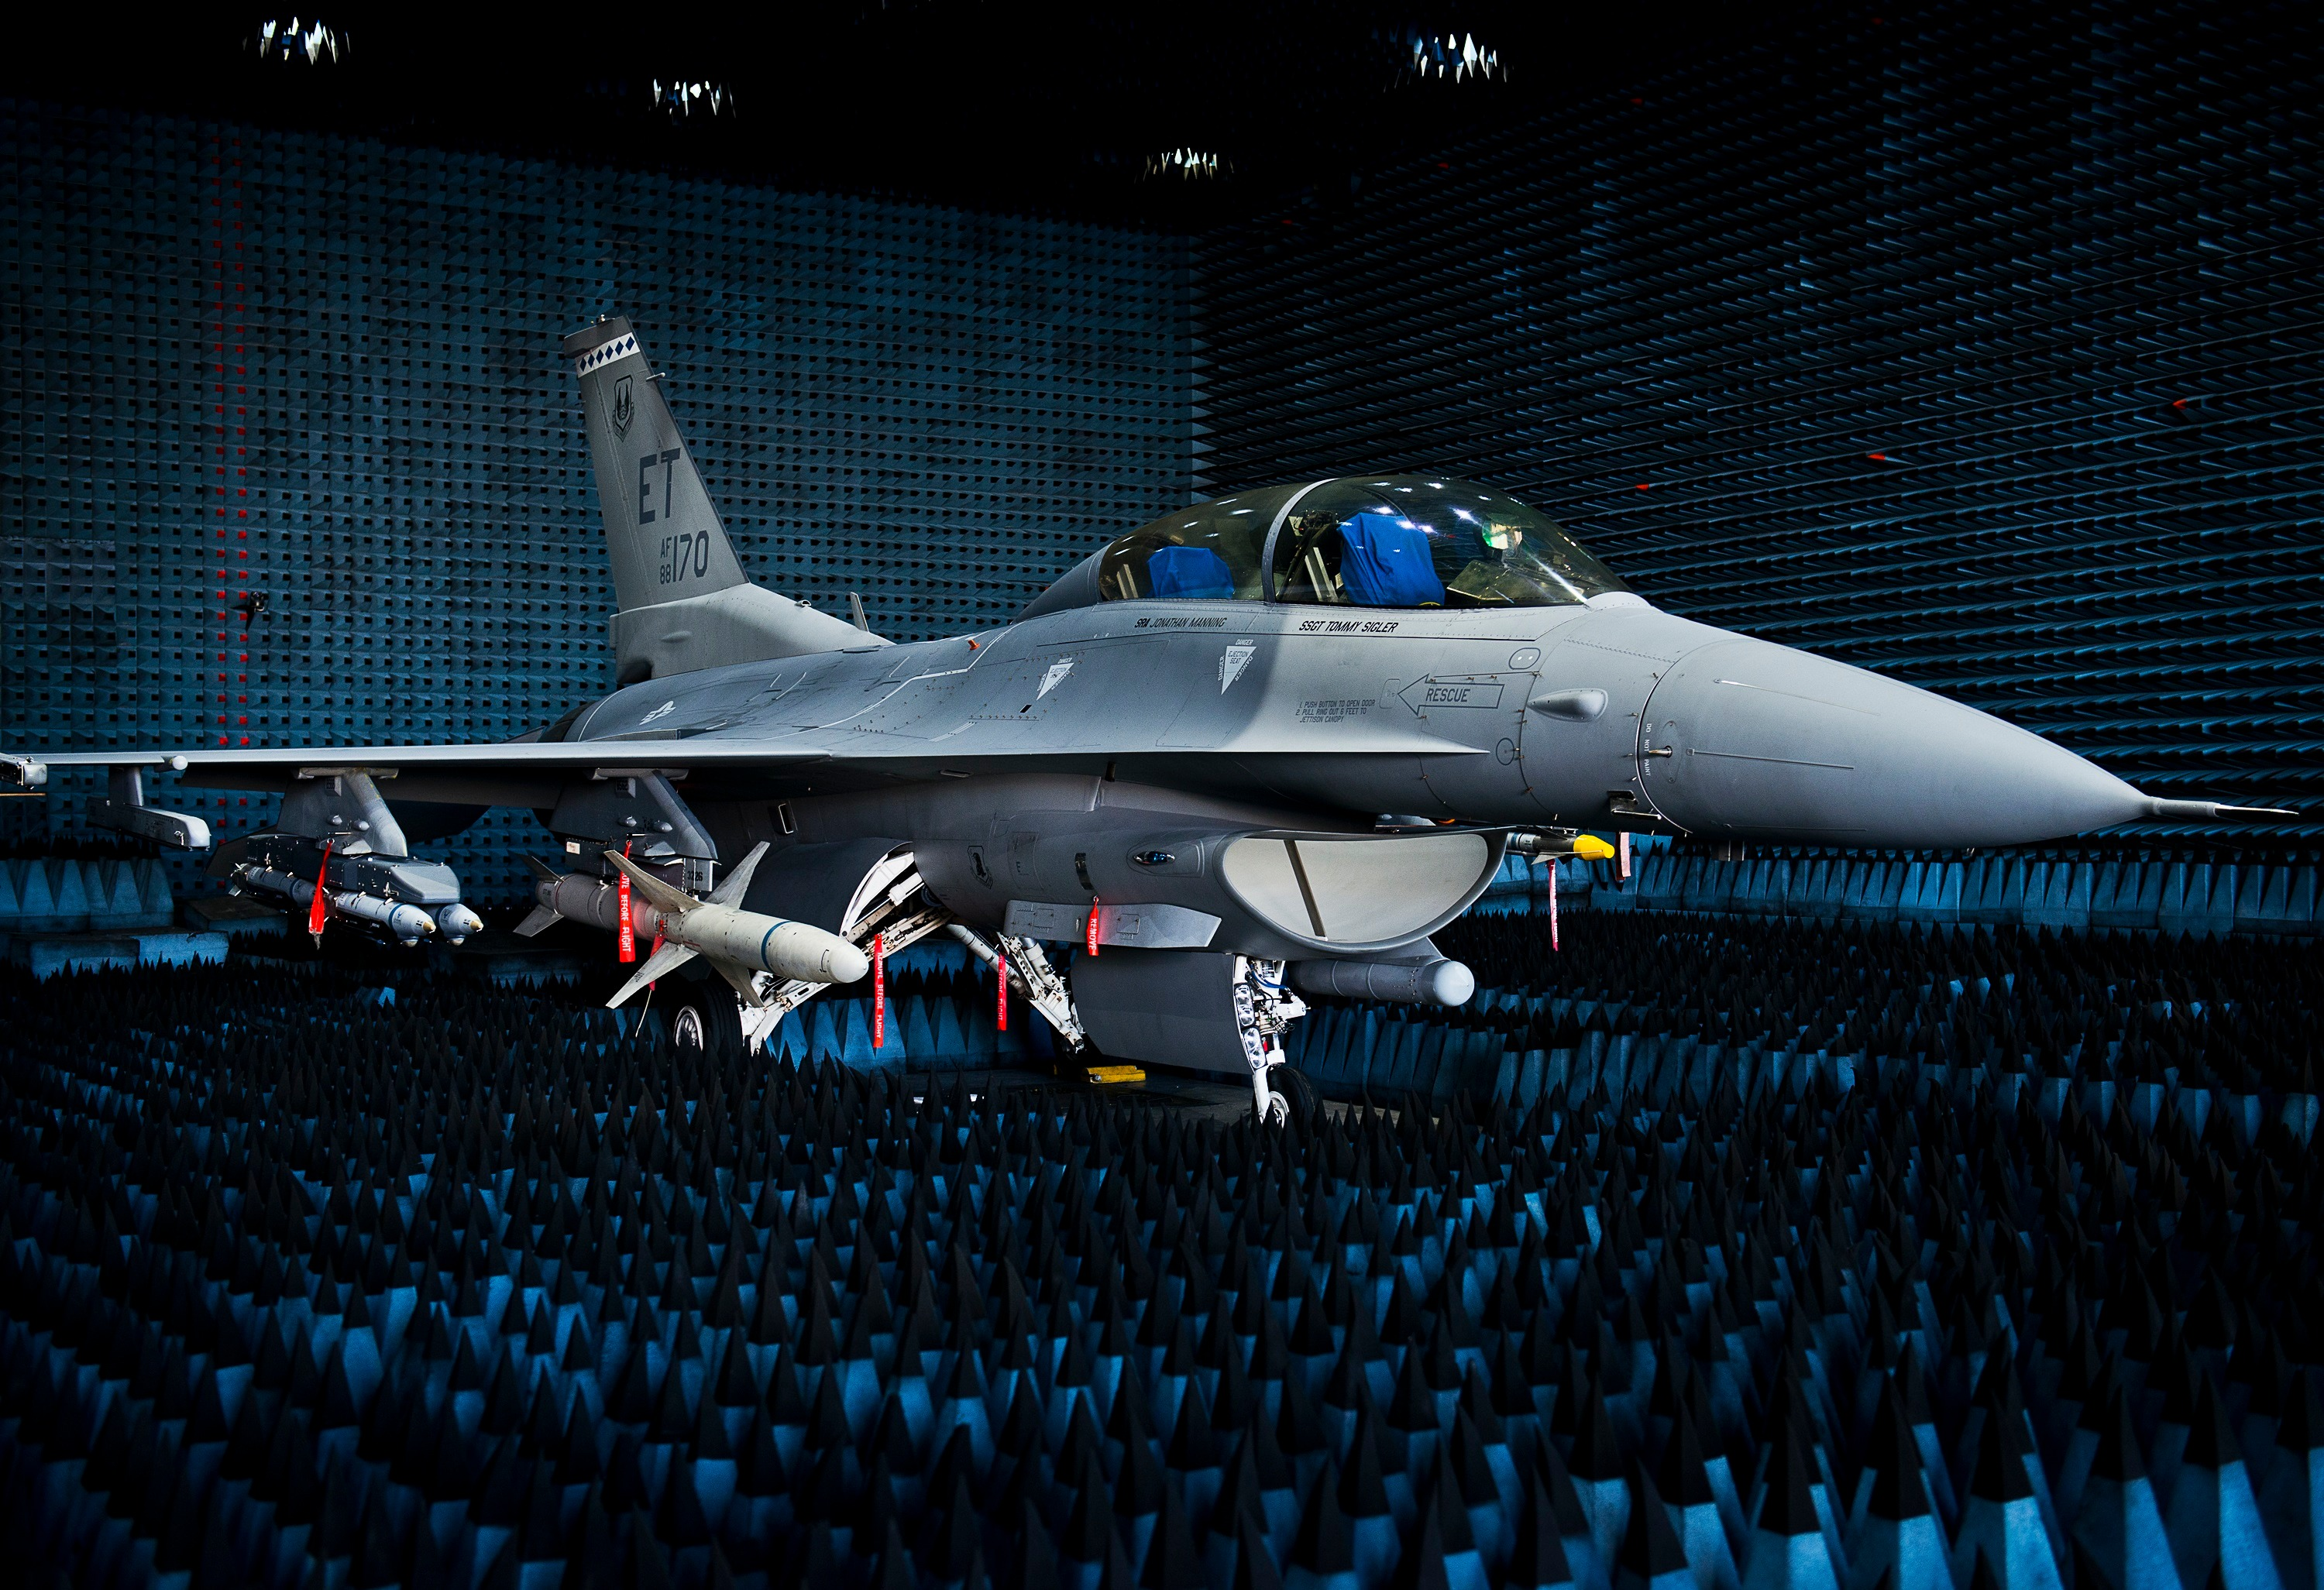 Top Guns: These Are the Most Lethal Air Forces on the Planet - Warrior Maven